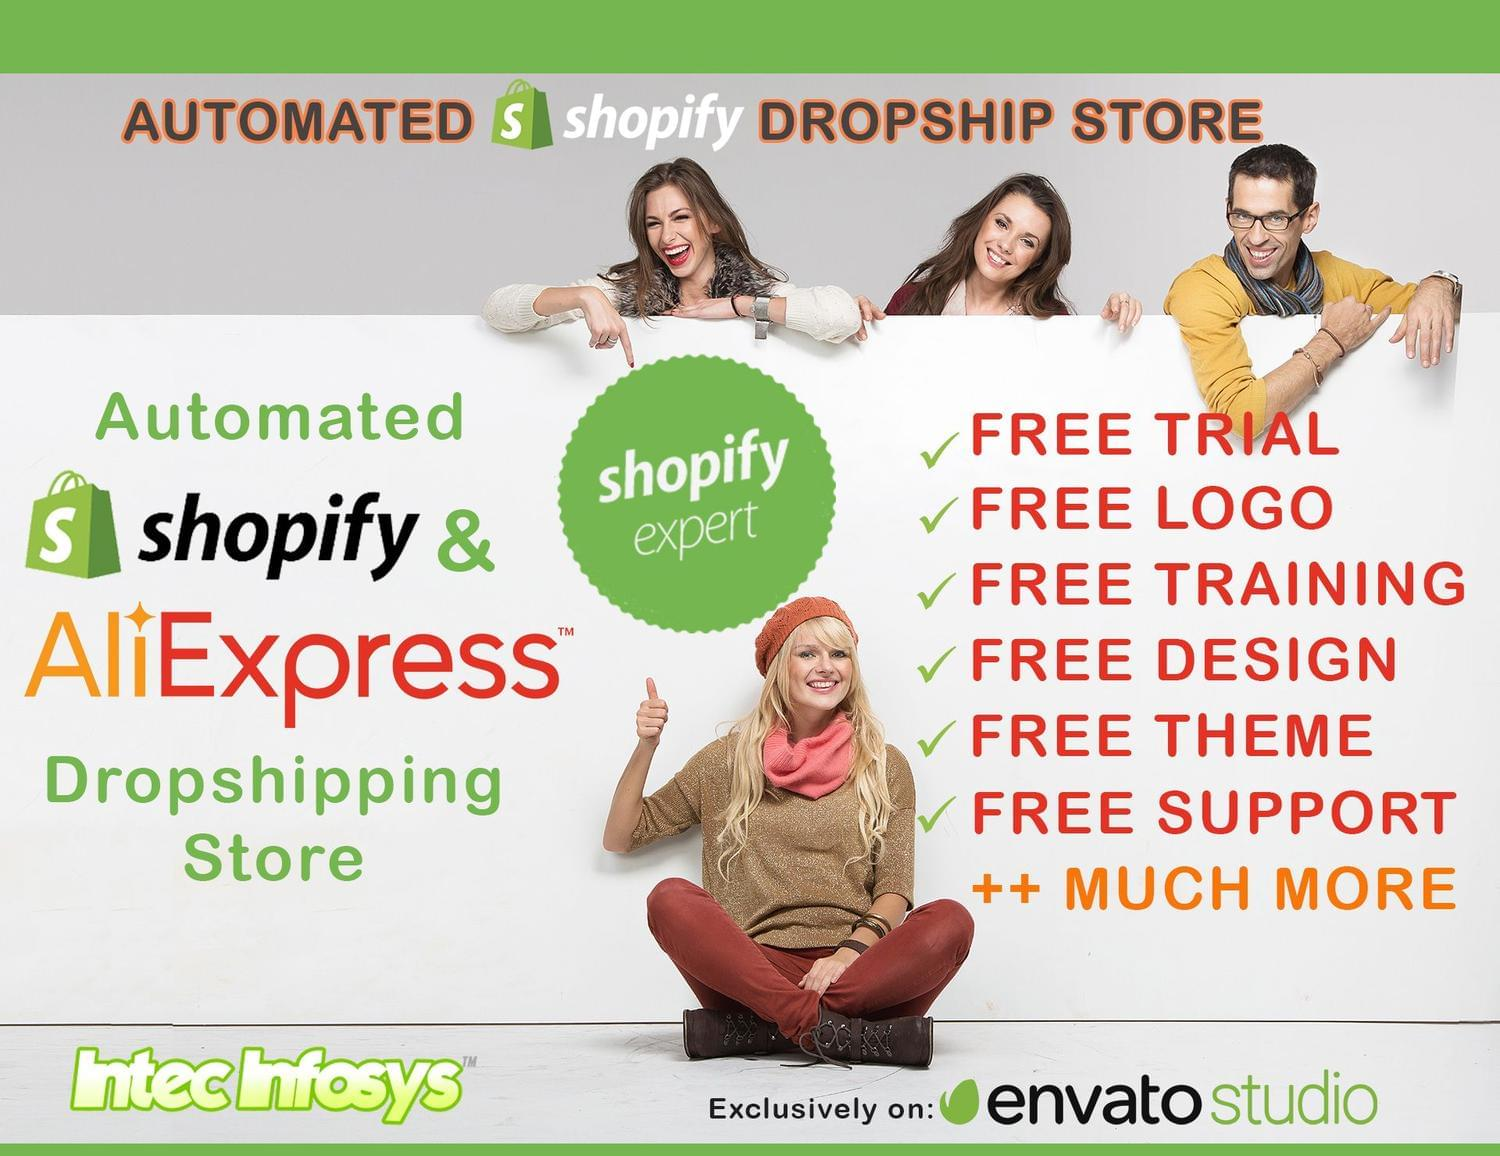 Automated Shopify Dropship store by intecinfosys - 114288